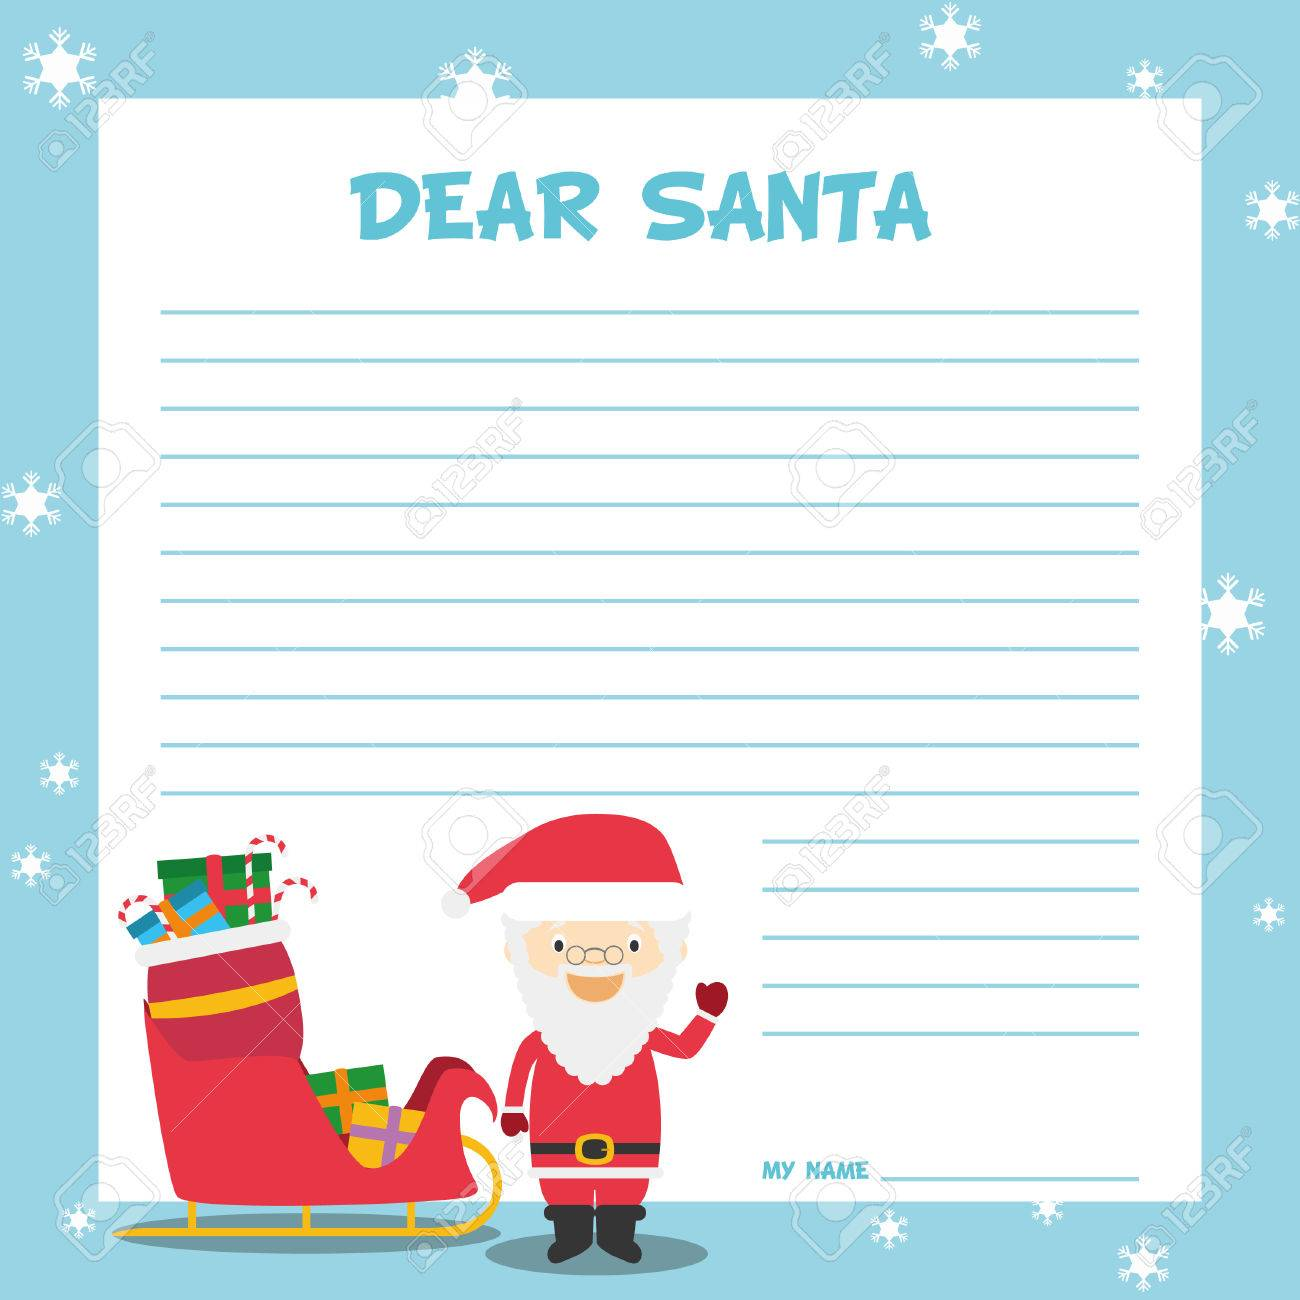 Santa claus letter template vector illustration for christmas santa claus letter template vector illustration for christmas time with child character sled and spiritdancerdesigns Image collections